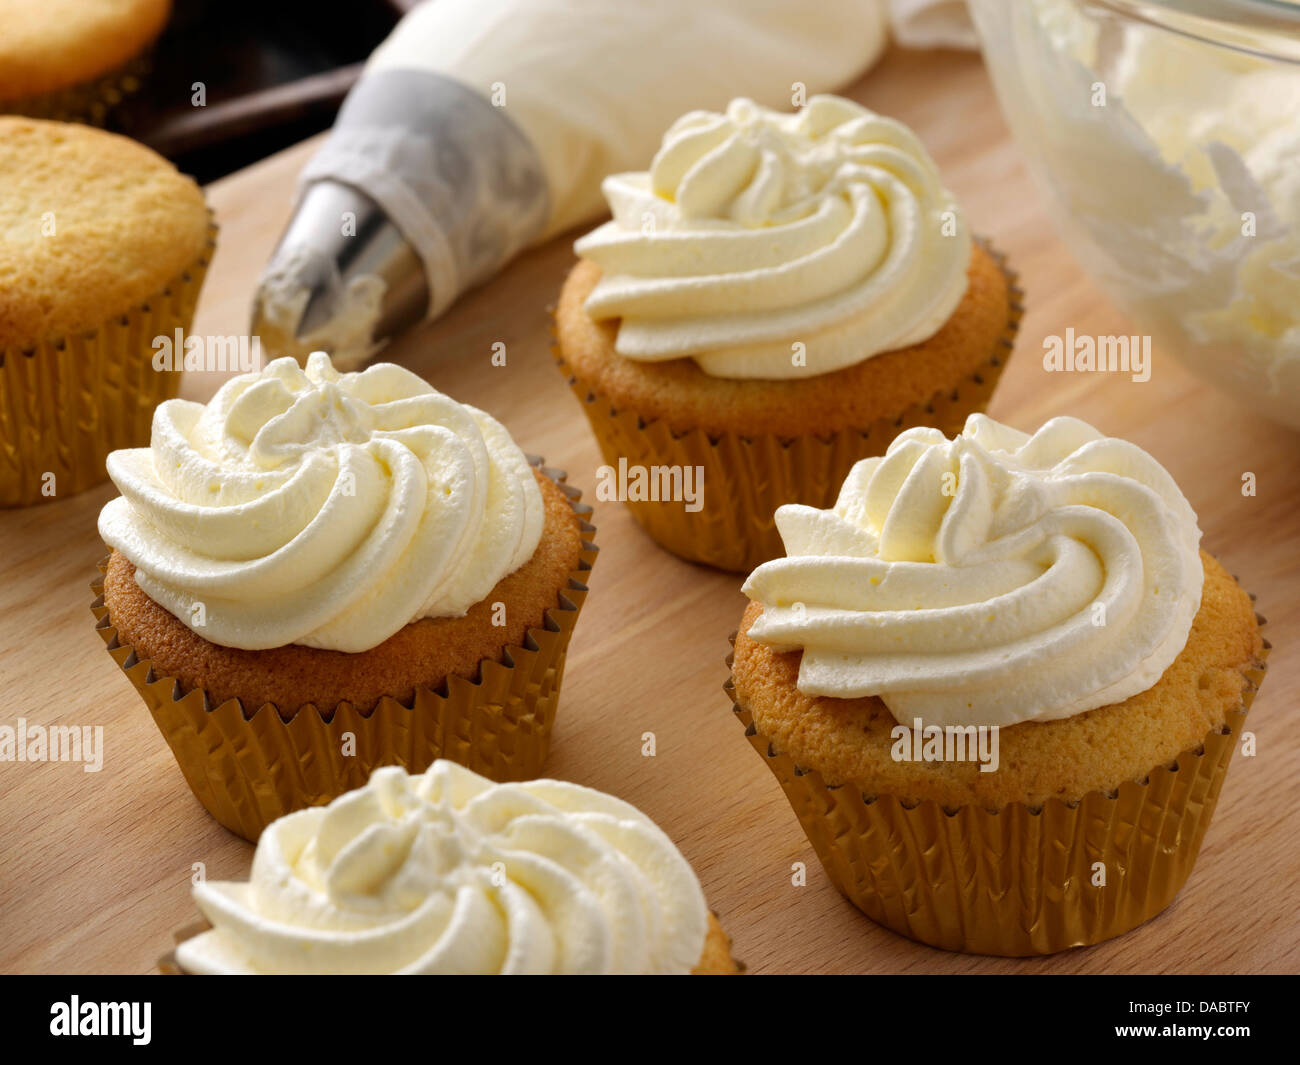 Vanilla frosting using cream cheese